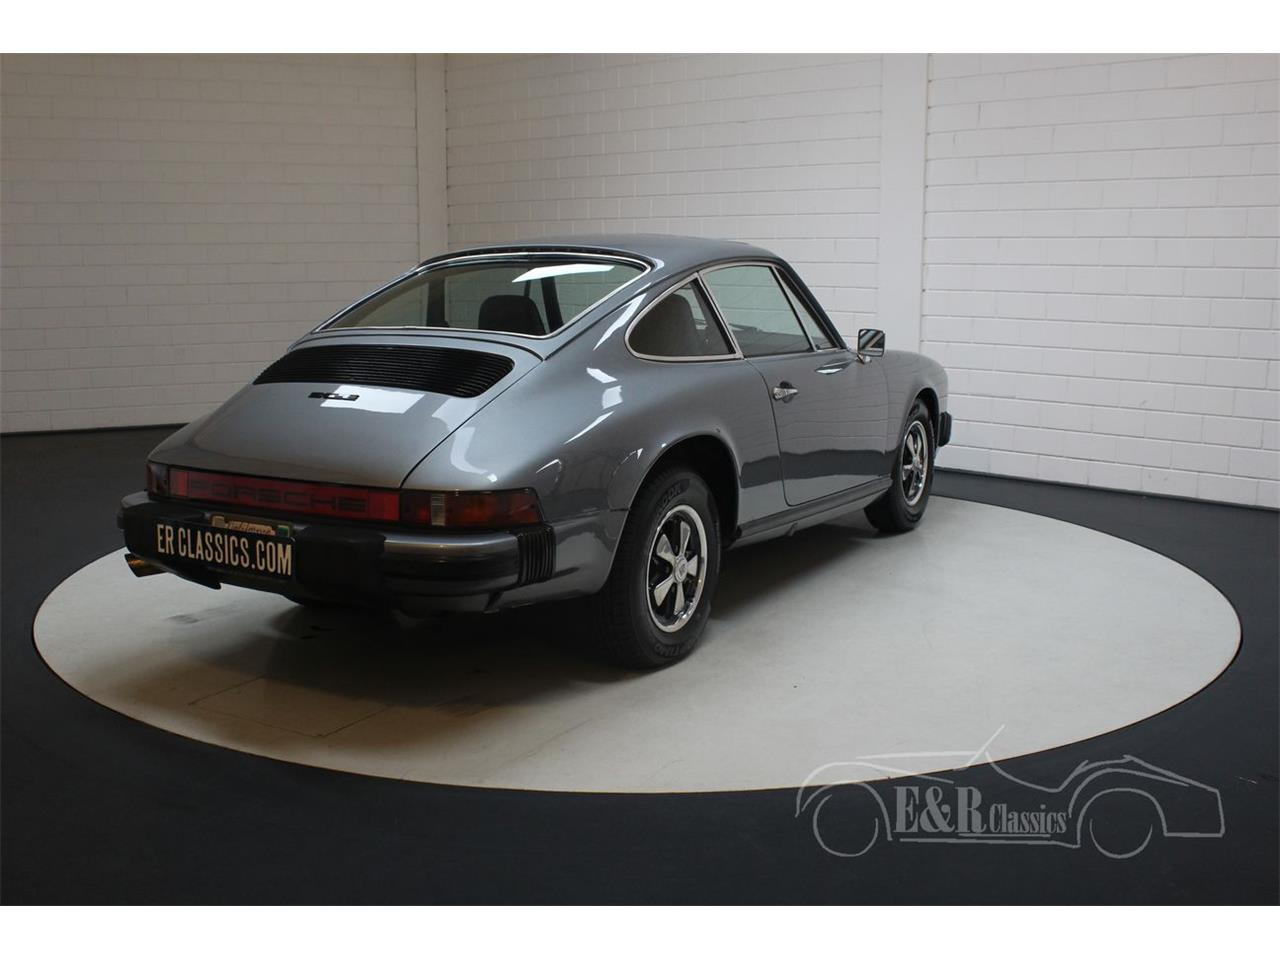 Large Picture of '76 Porsche 912E located in Noord-Brabant - $44,700.00 Offered by E & R Classics - Q66S